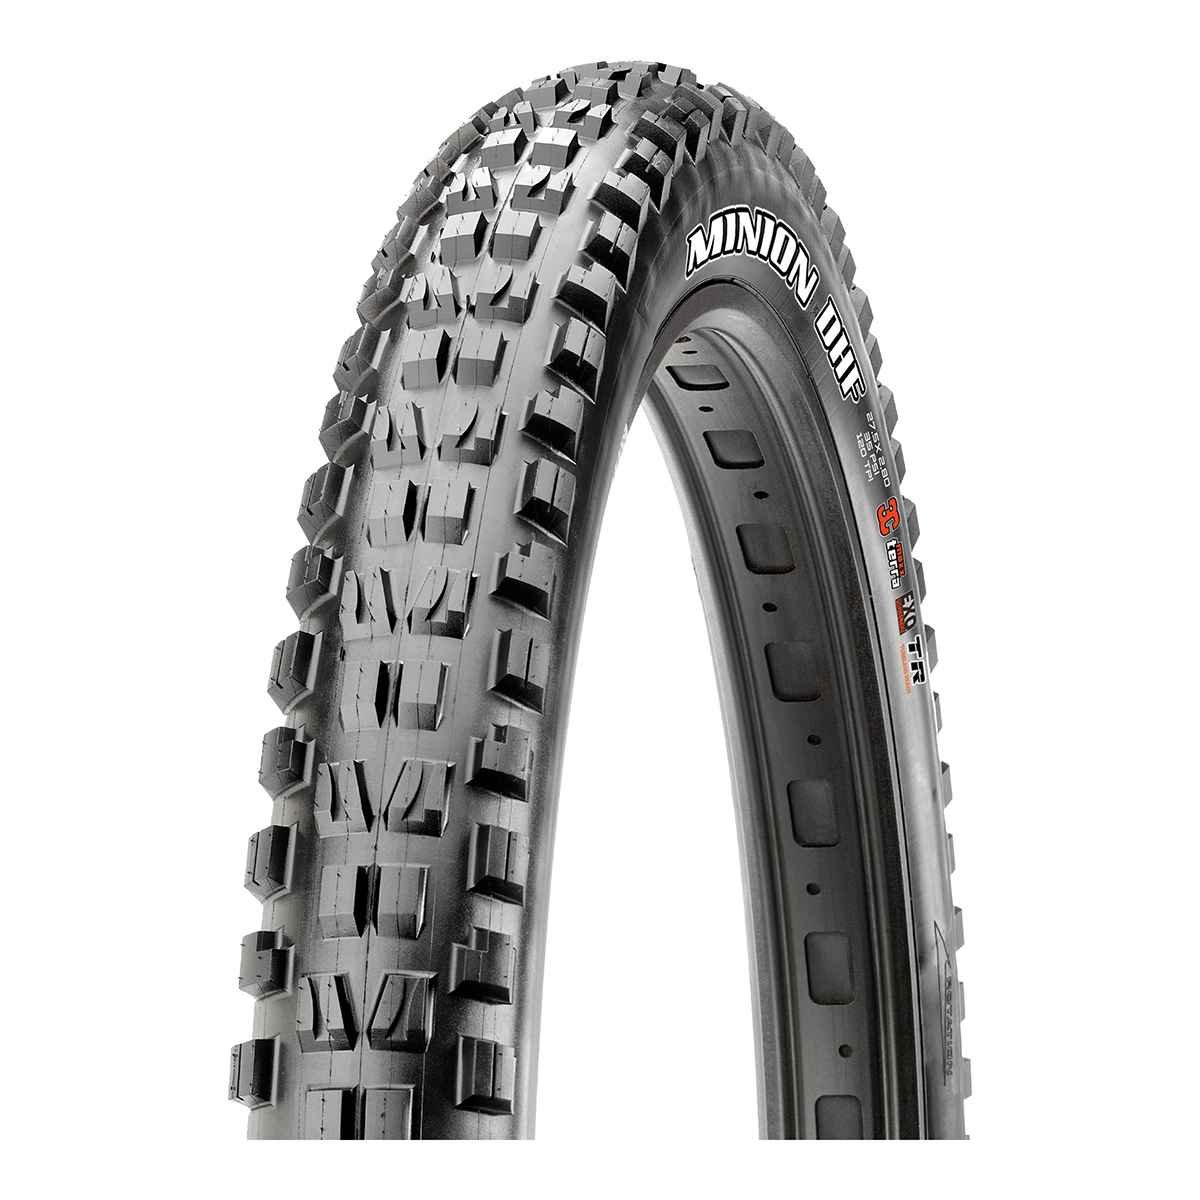 Maxxis Minion DHF EXO / TRタイヤ – 27.5 Plus B01M0AYNNGDual Compound/EXO/TR 27.5x2.8